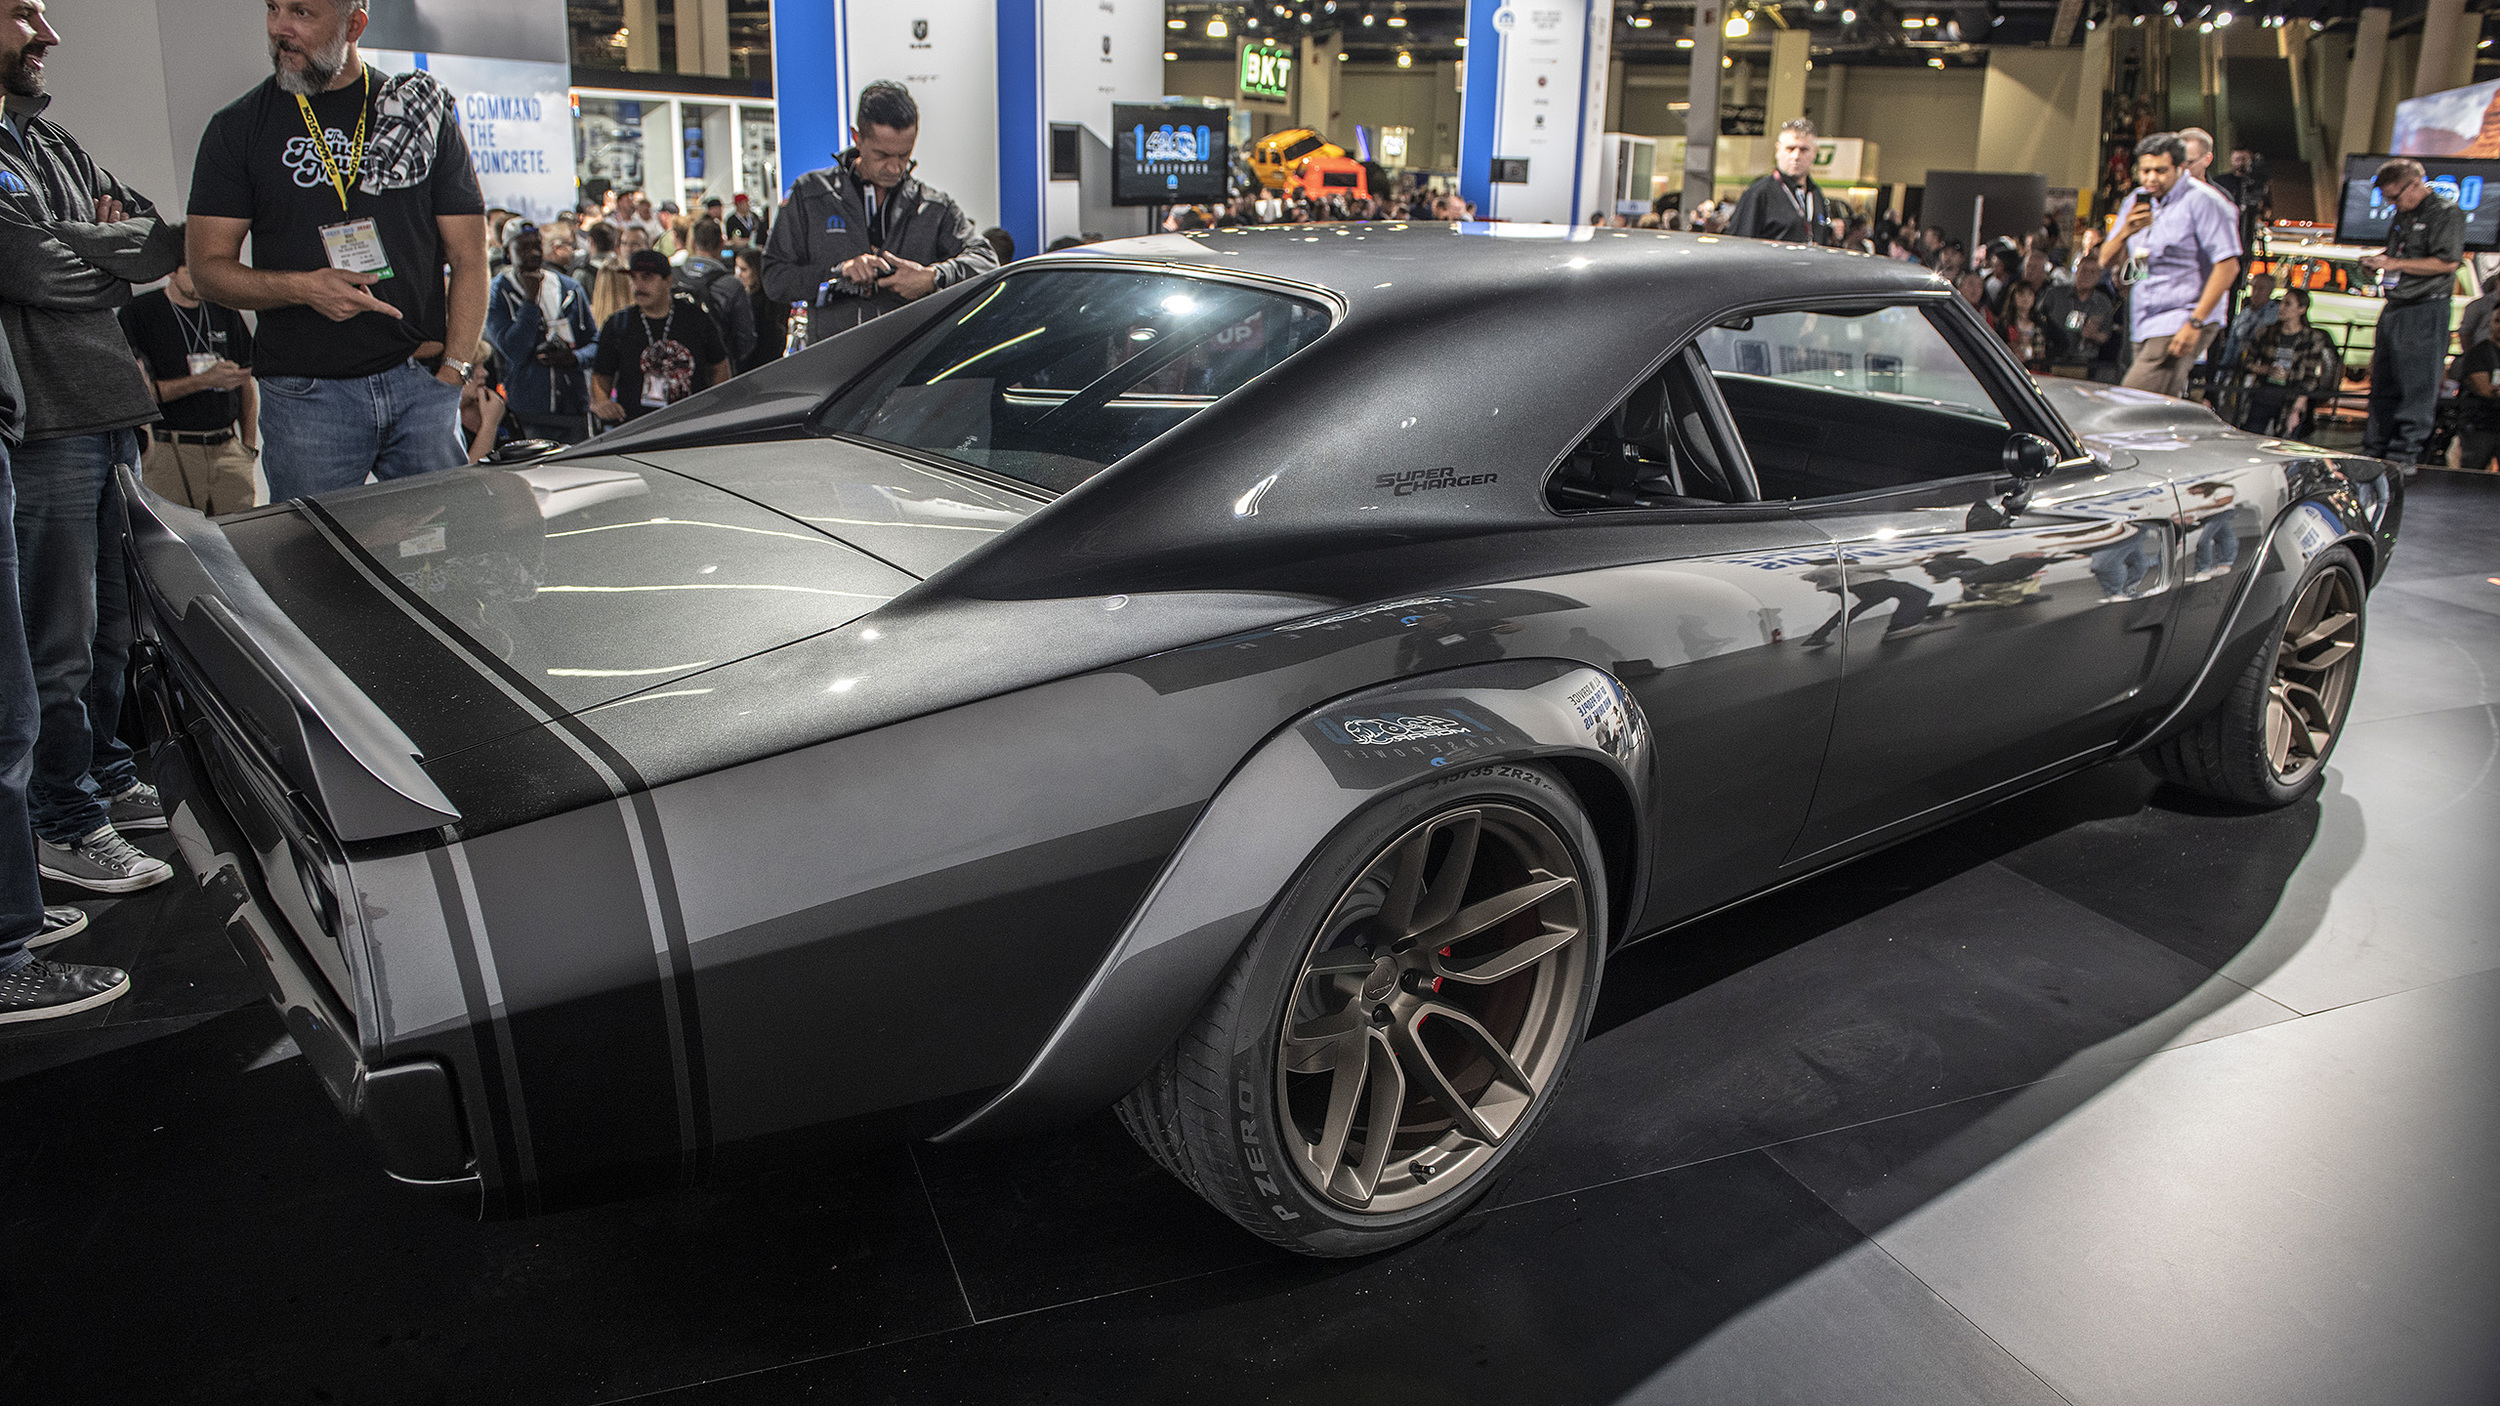 Fast And Furious 8 Cars List >> 1968 Dodge Super Charger has the 1,000-hp Hellephant engine   Autoblog